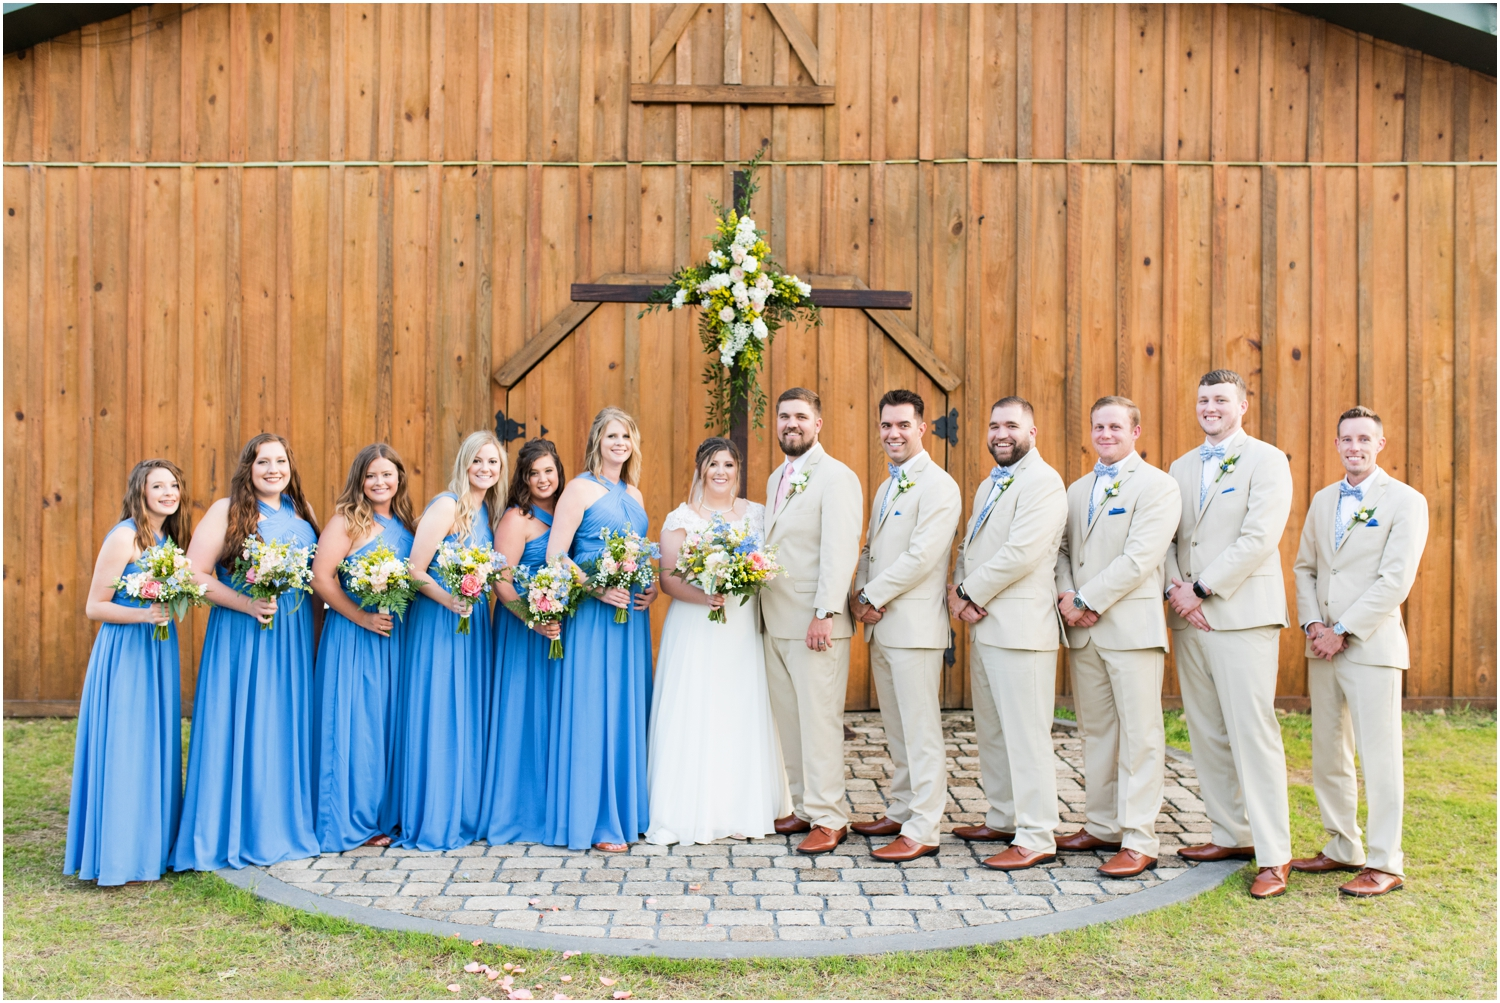 Sowell Farms Milton Florida Rustic Woodsy Barn Wedding Photographer ceremony bridal party